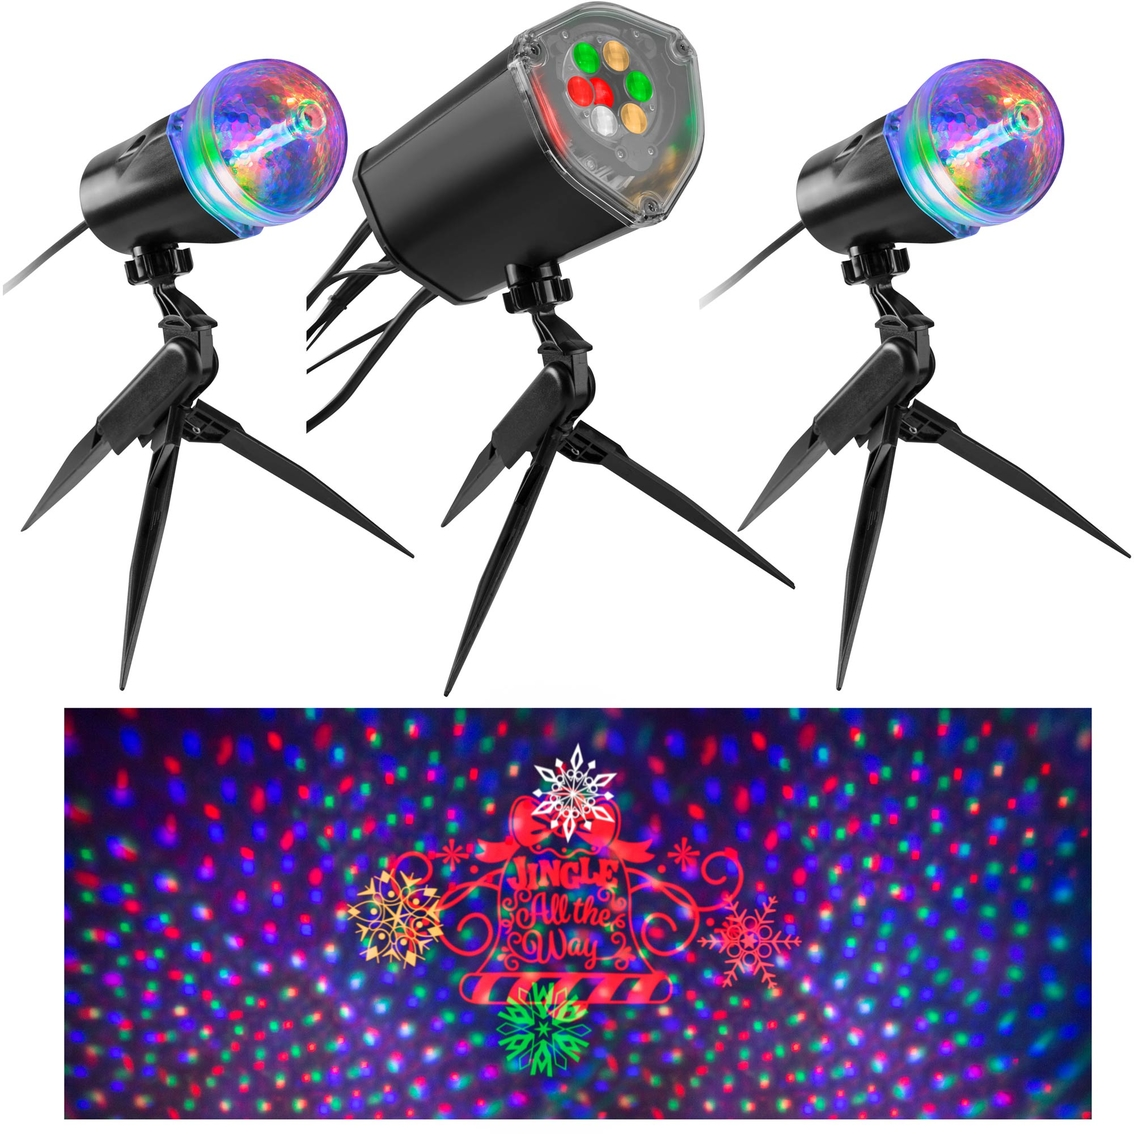 Gemmy Lightshow Projection Lightsync With Sound Jingle All The Way